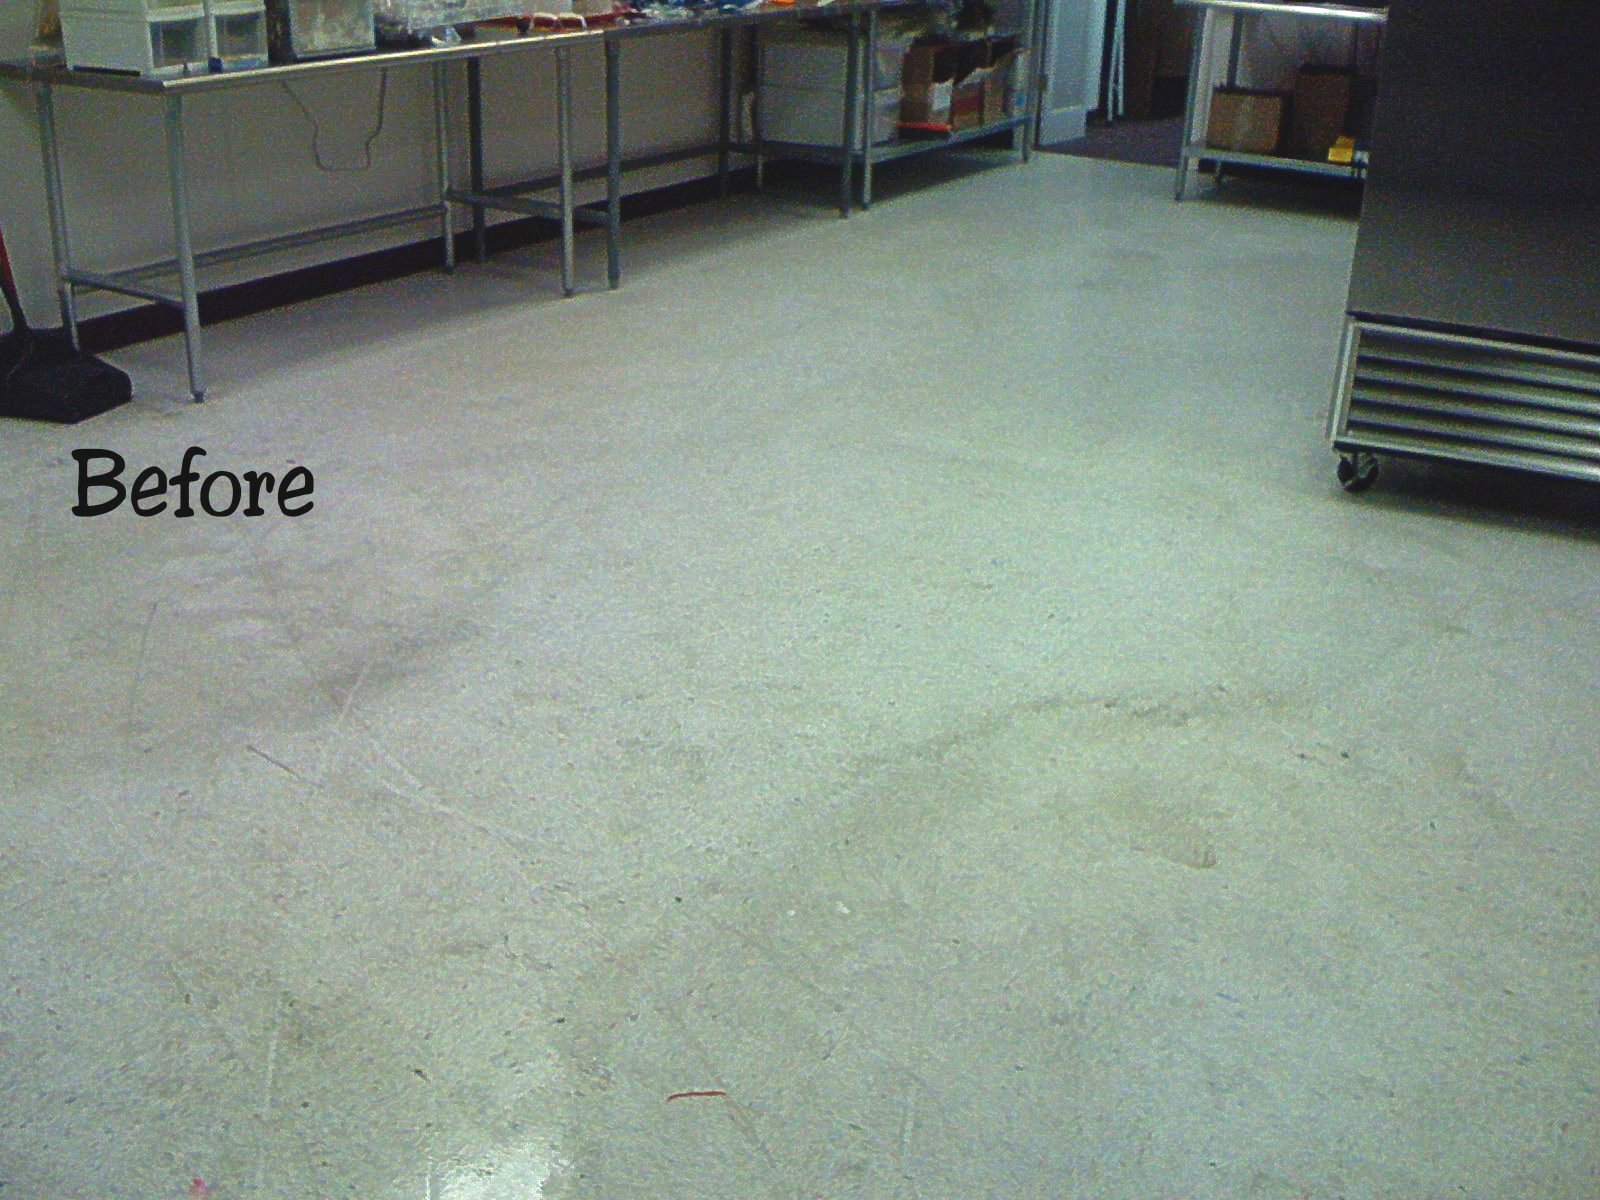 OKlahoma City Carpet Cleaning Services | Carpet Cleaning ...